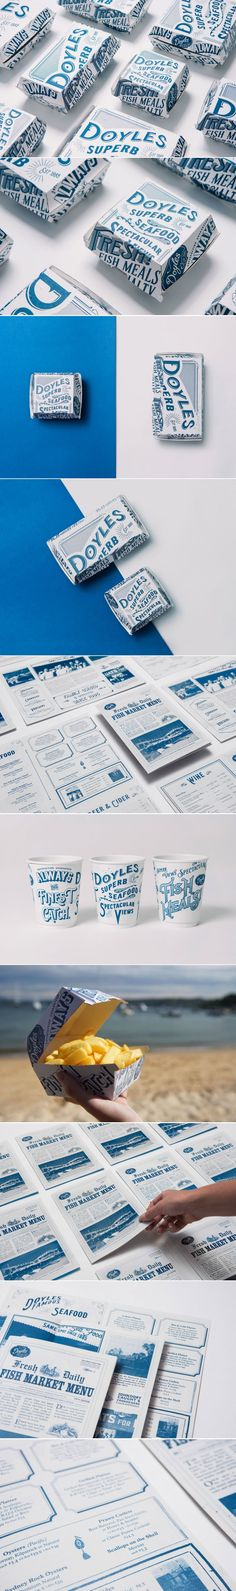 Doyles Seafood Comes With Packaging Inspired By Newspaper Headlines — The Dieline | Packaging & Branding Design & Innovation News